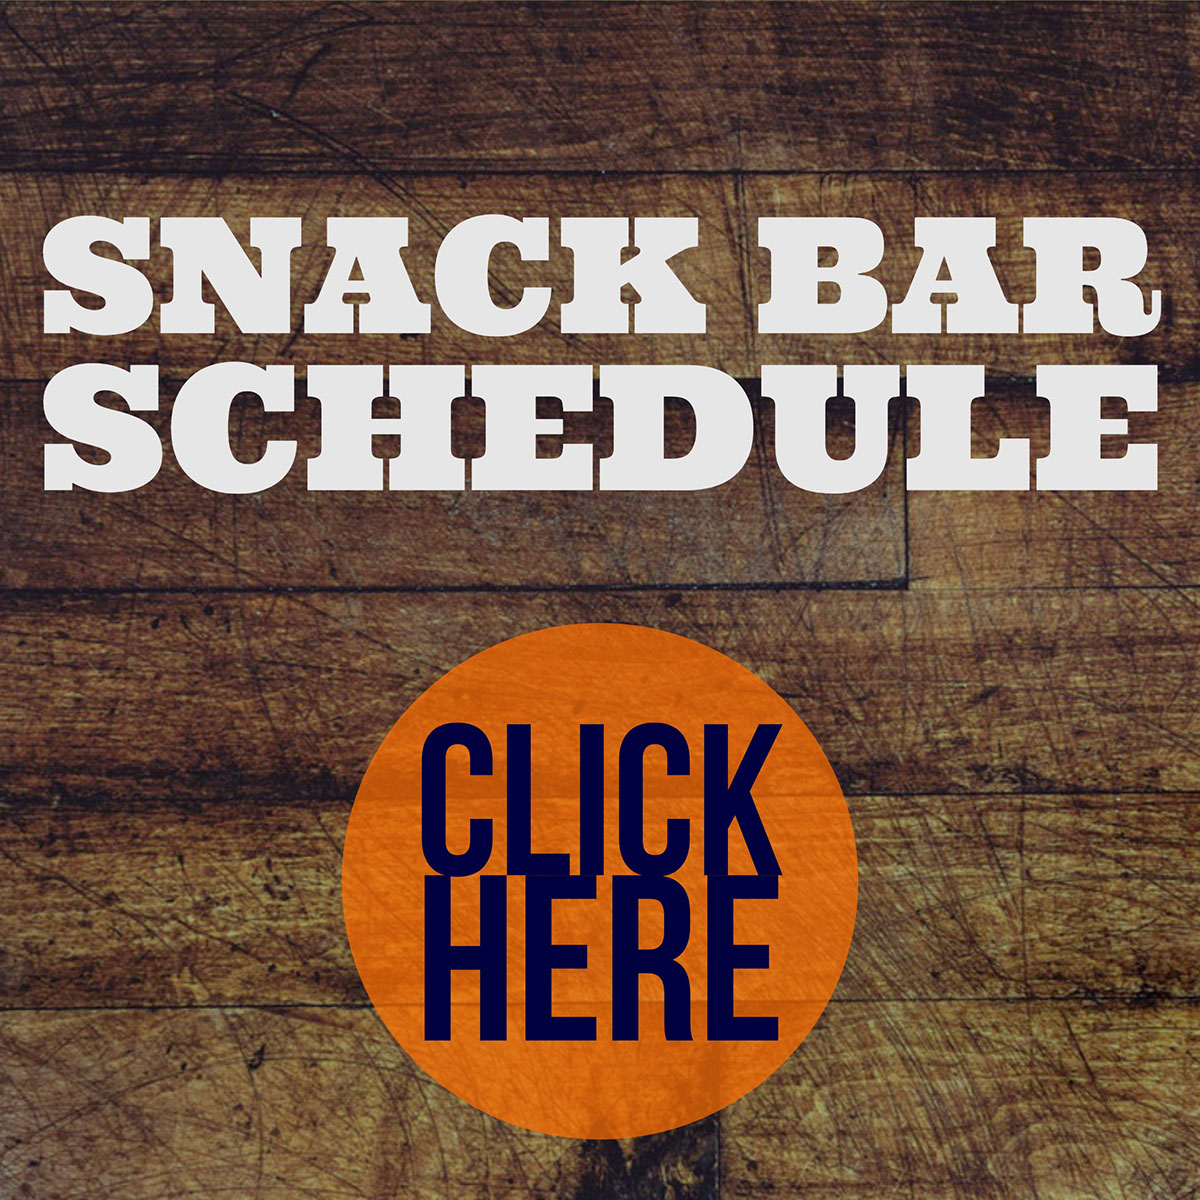 Snack Bar Schedule  Snack Bar Schedule <P>CLICK HERE